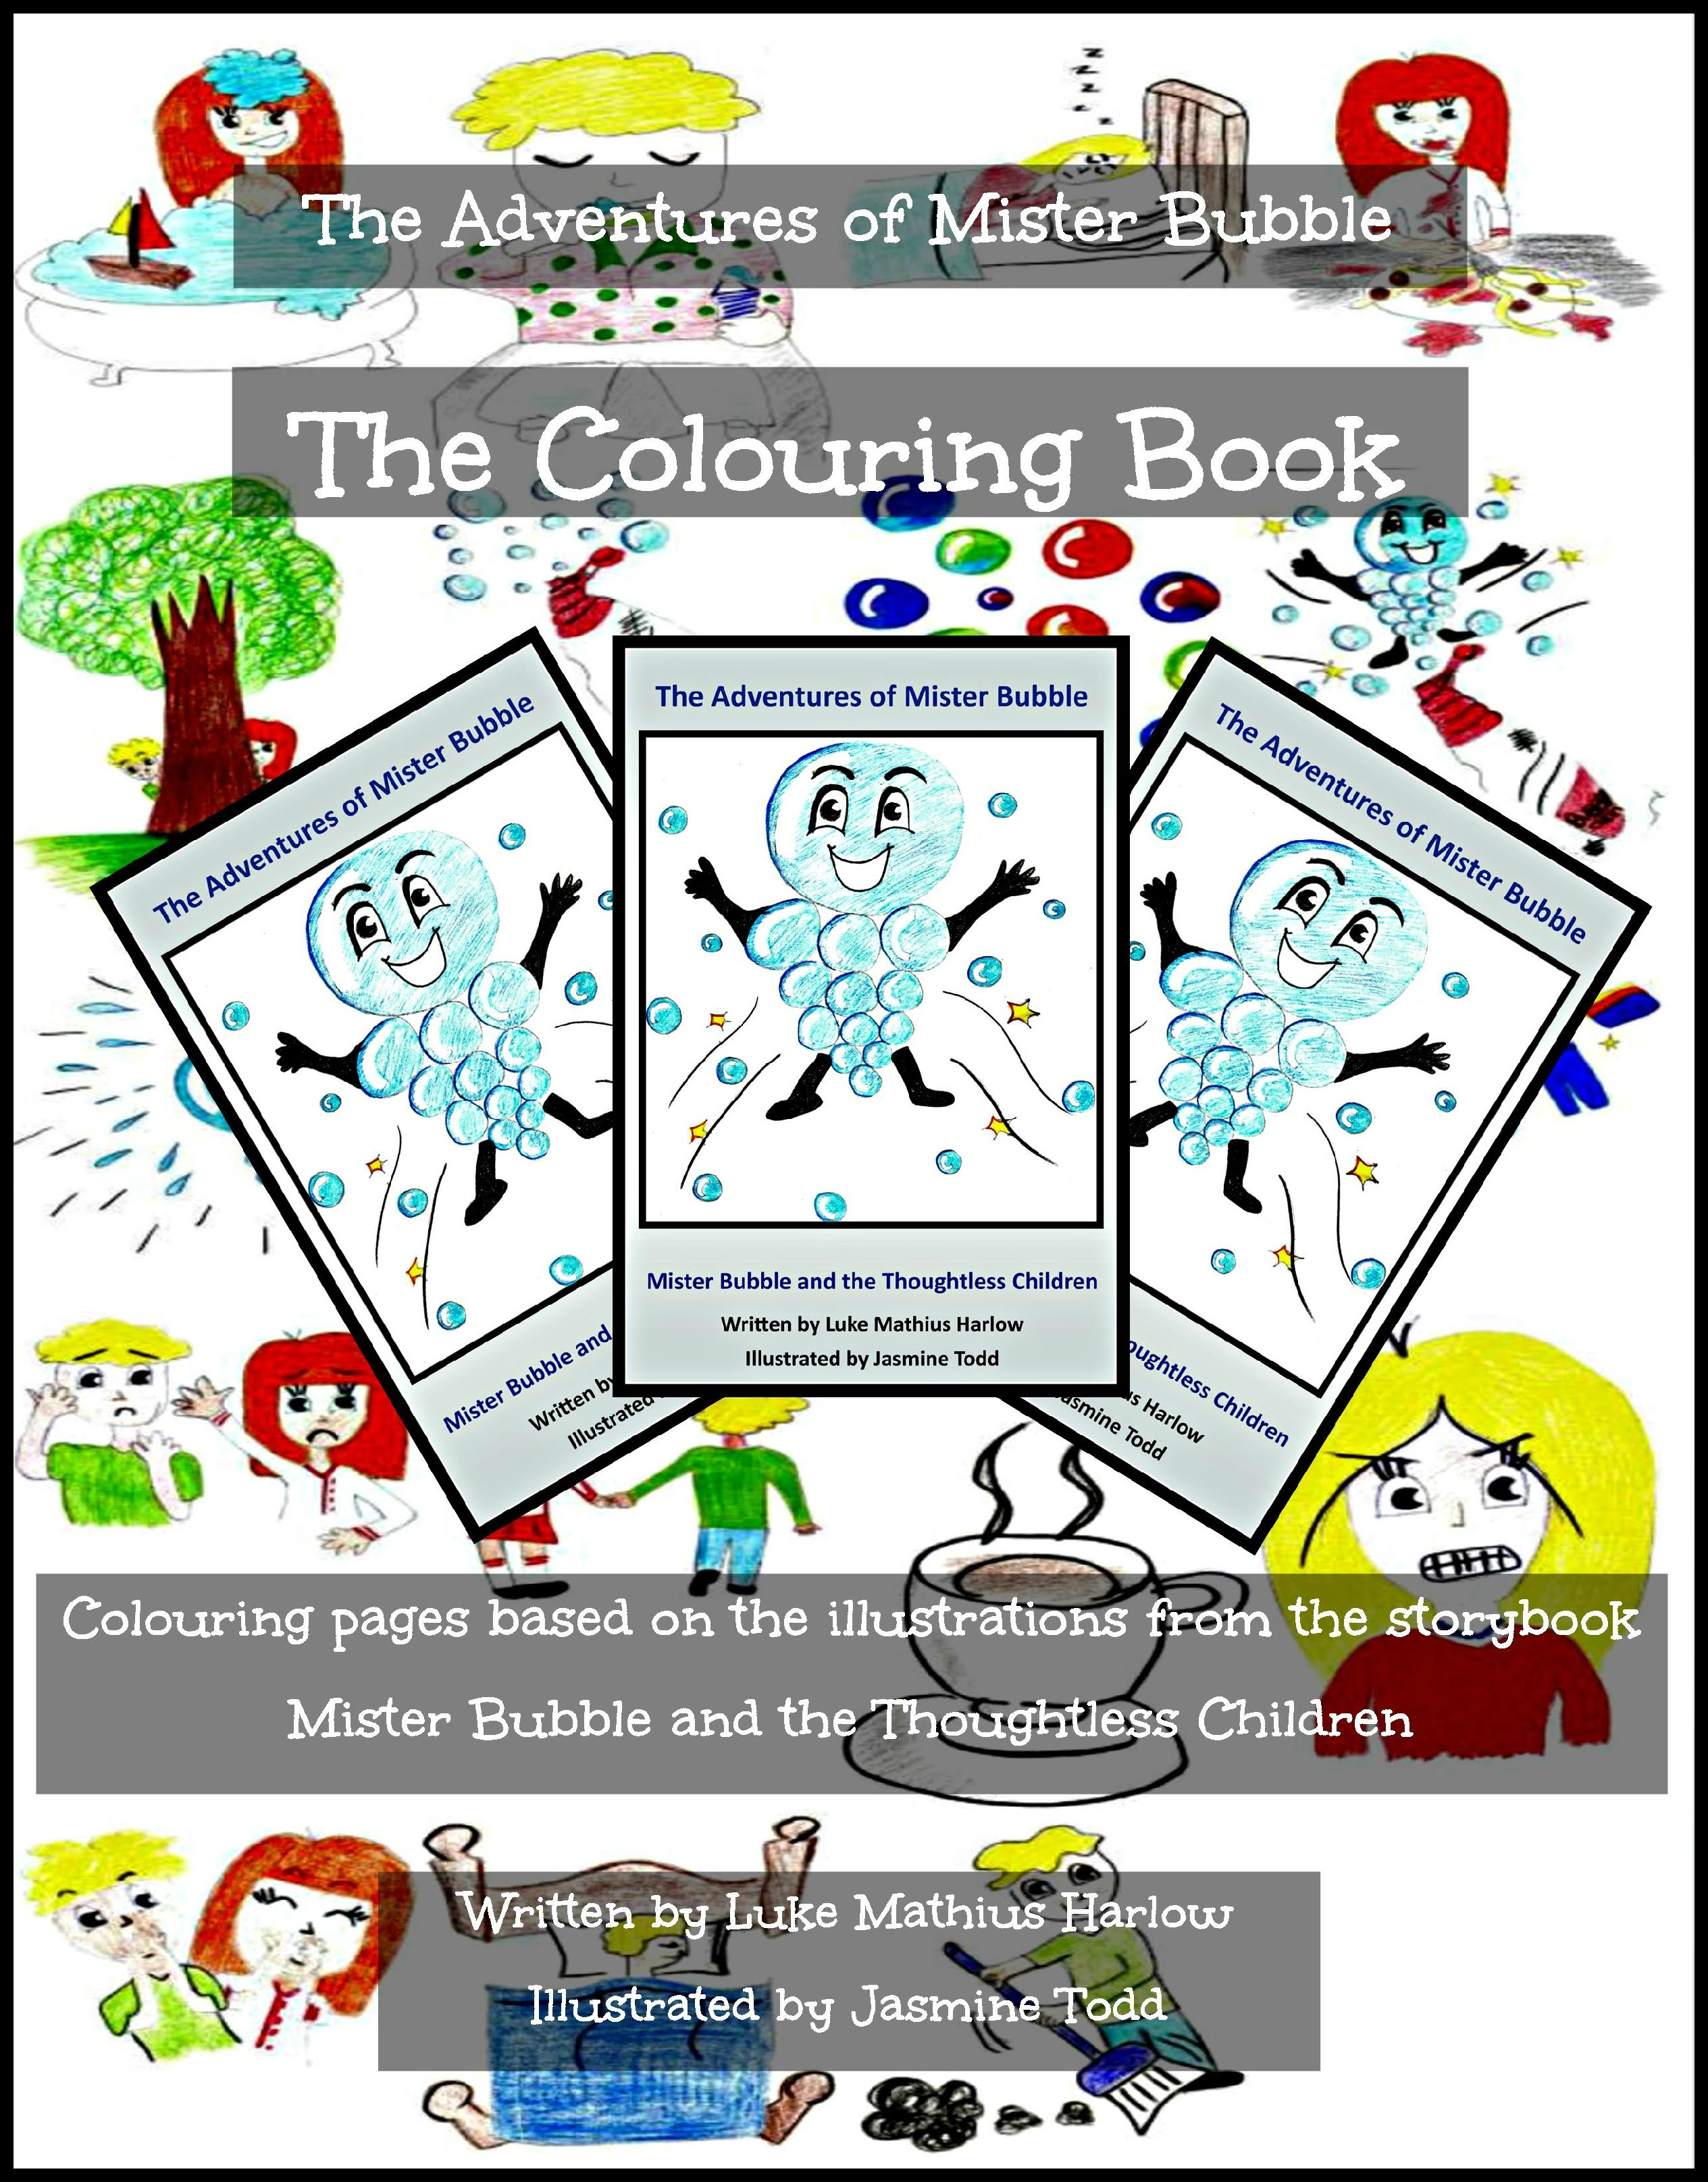 http://www.amazon.co.uk/Adventures-Mister-Bubble-Colouring-Book/dp/1508725284/ref=sr_1_3?ie=UTF8&qid=1441374271&sr=8-3&keywords=luke+mathius+harlow